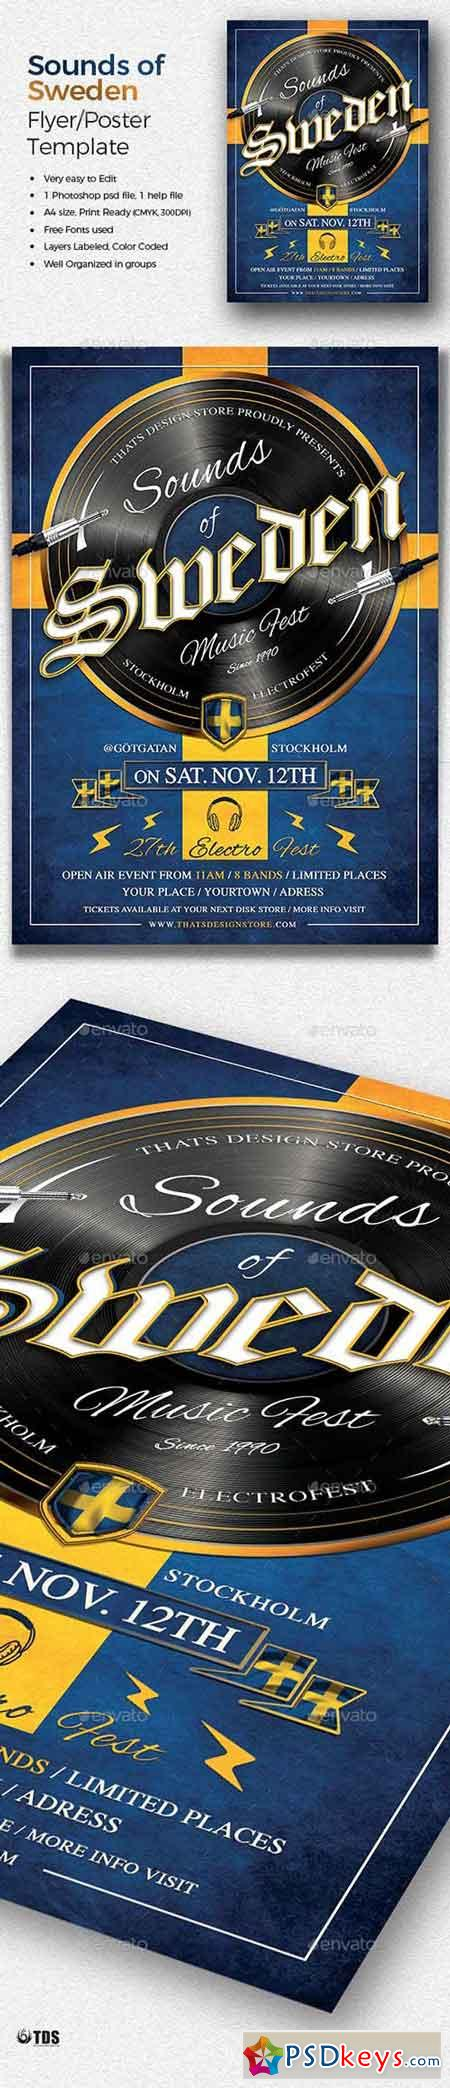 Sounds of Sweden Flyer Template 20051914